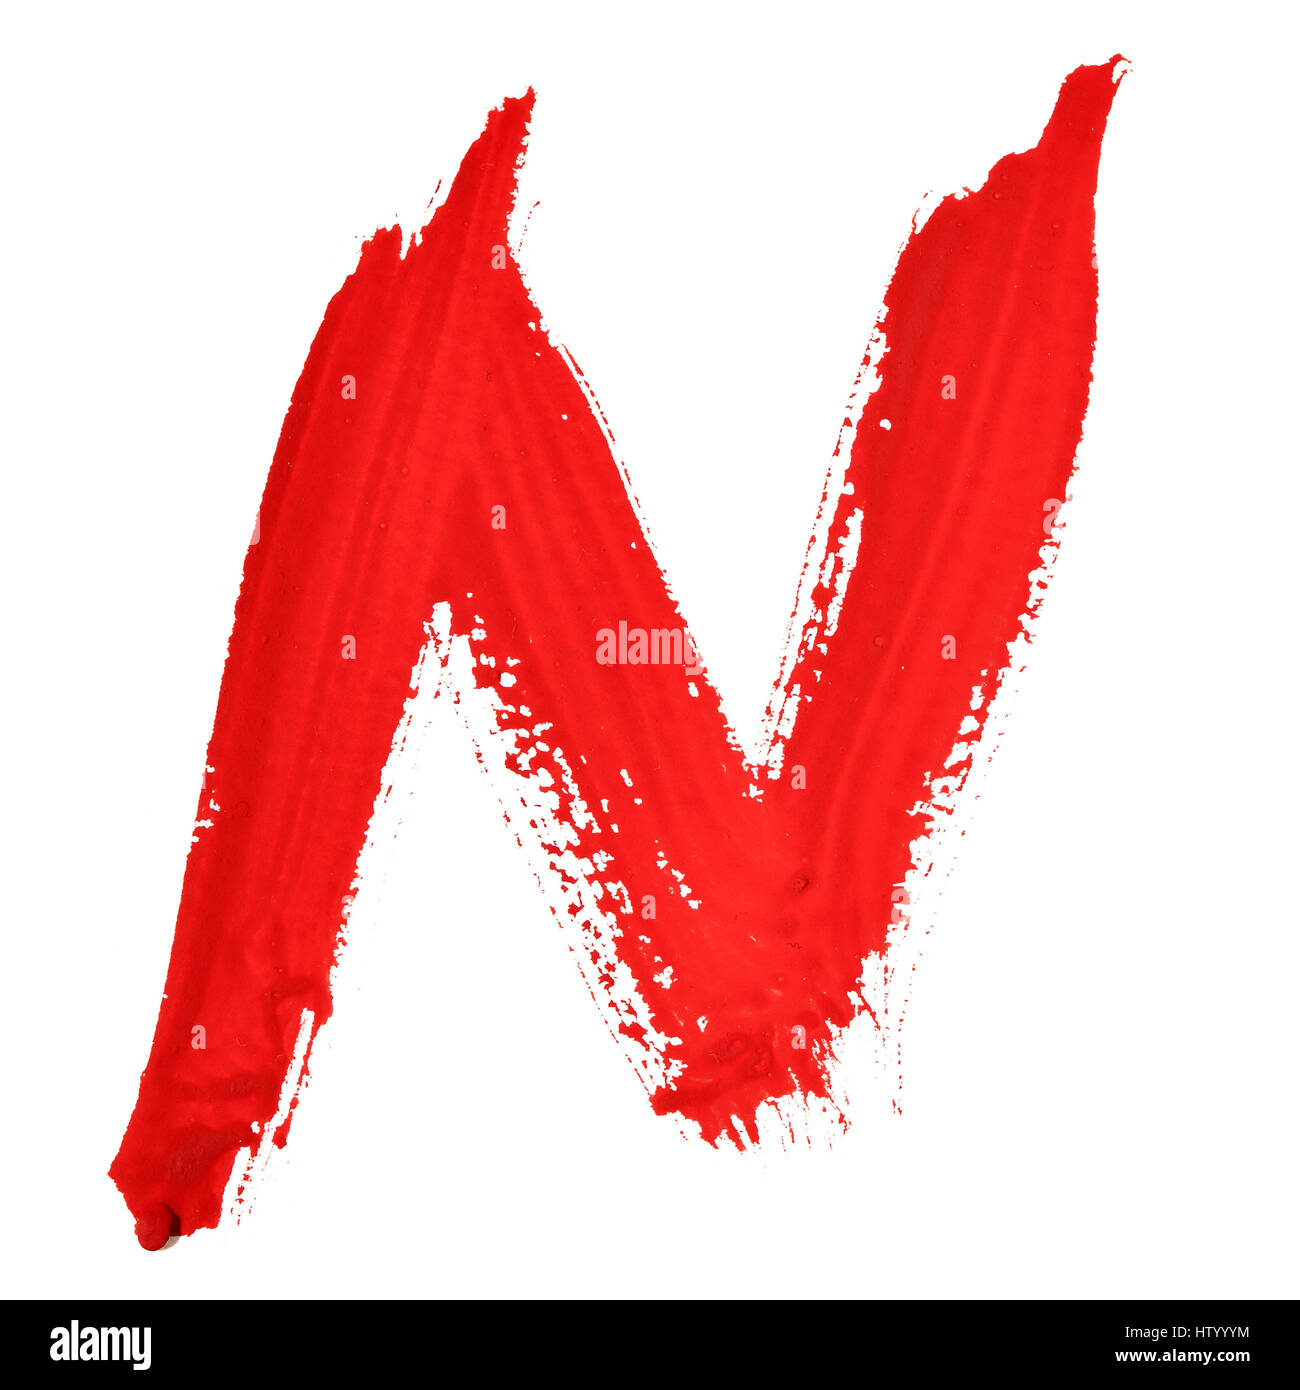 N - Red handwritten letters over white background - Stock Image